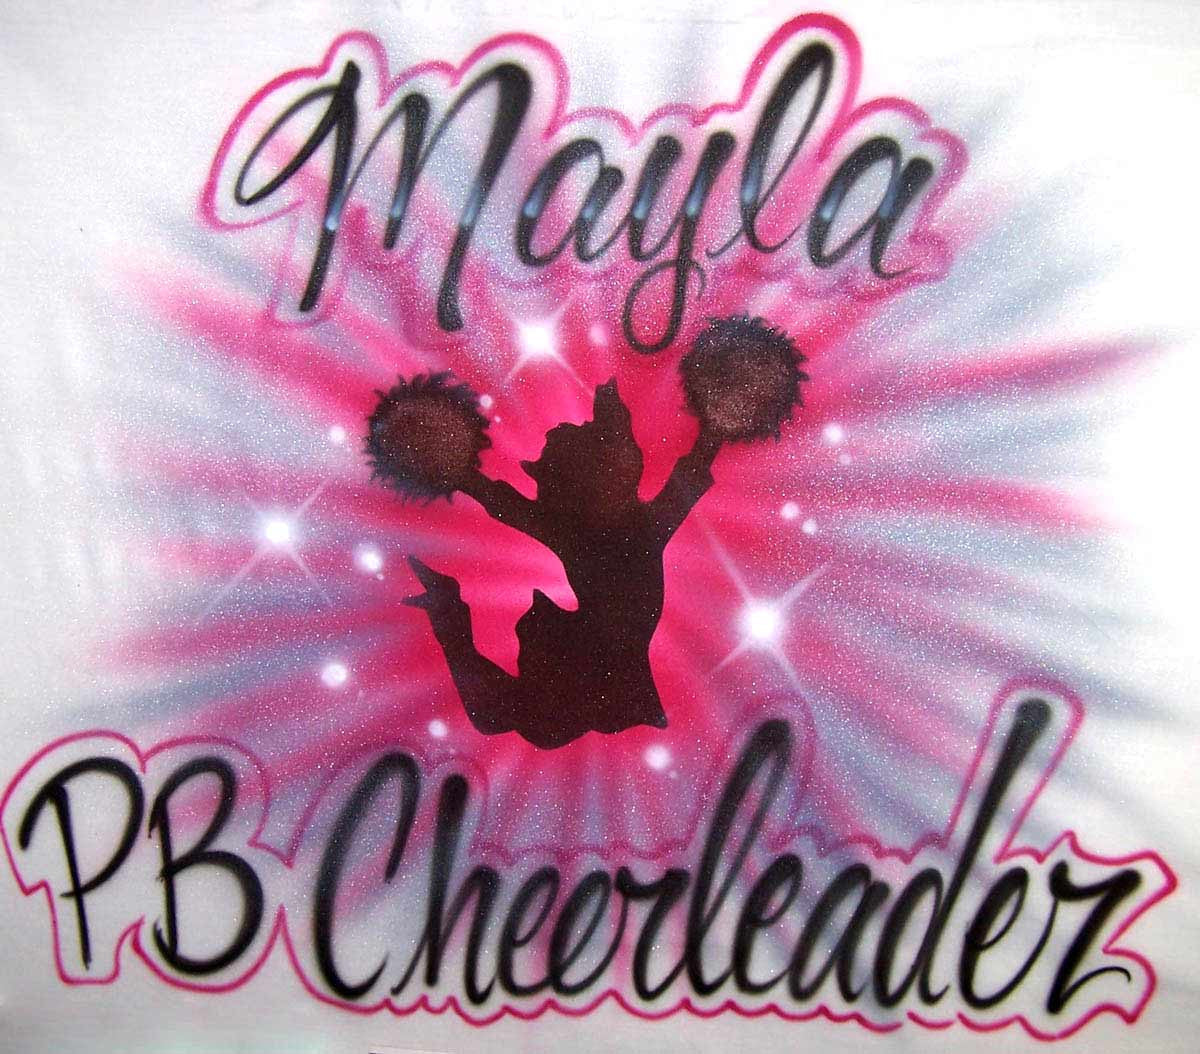 Tie Dye style airbrushed personalized cheerleader t-shirt sweatshirt